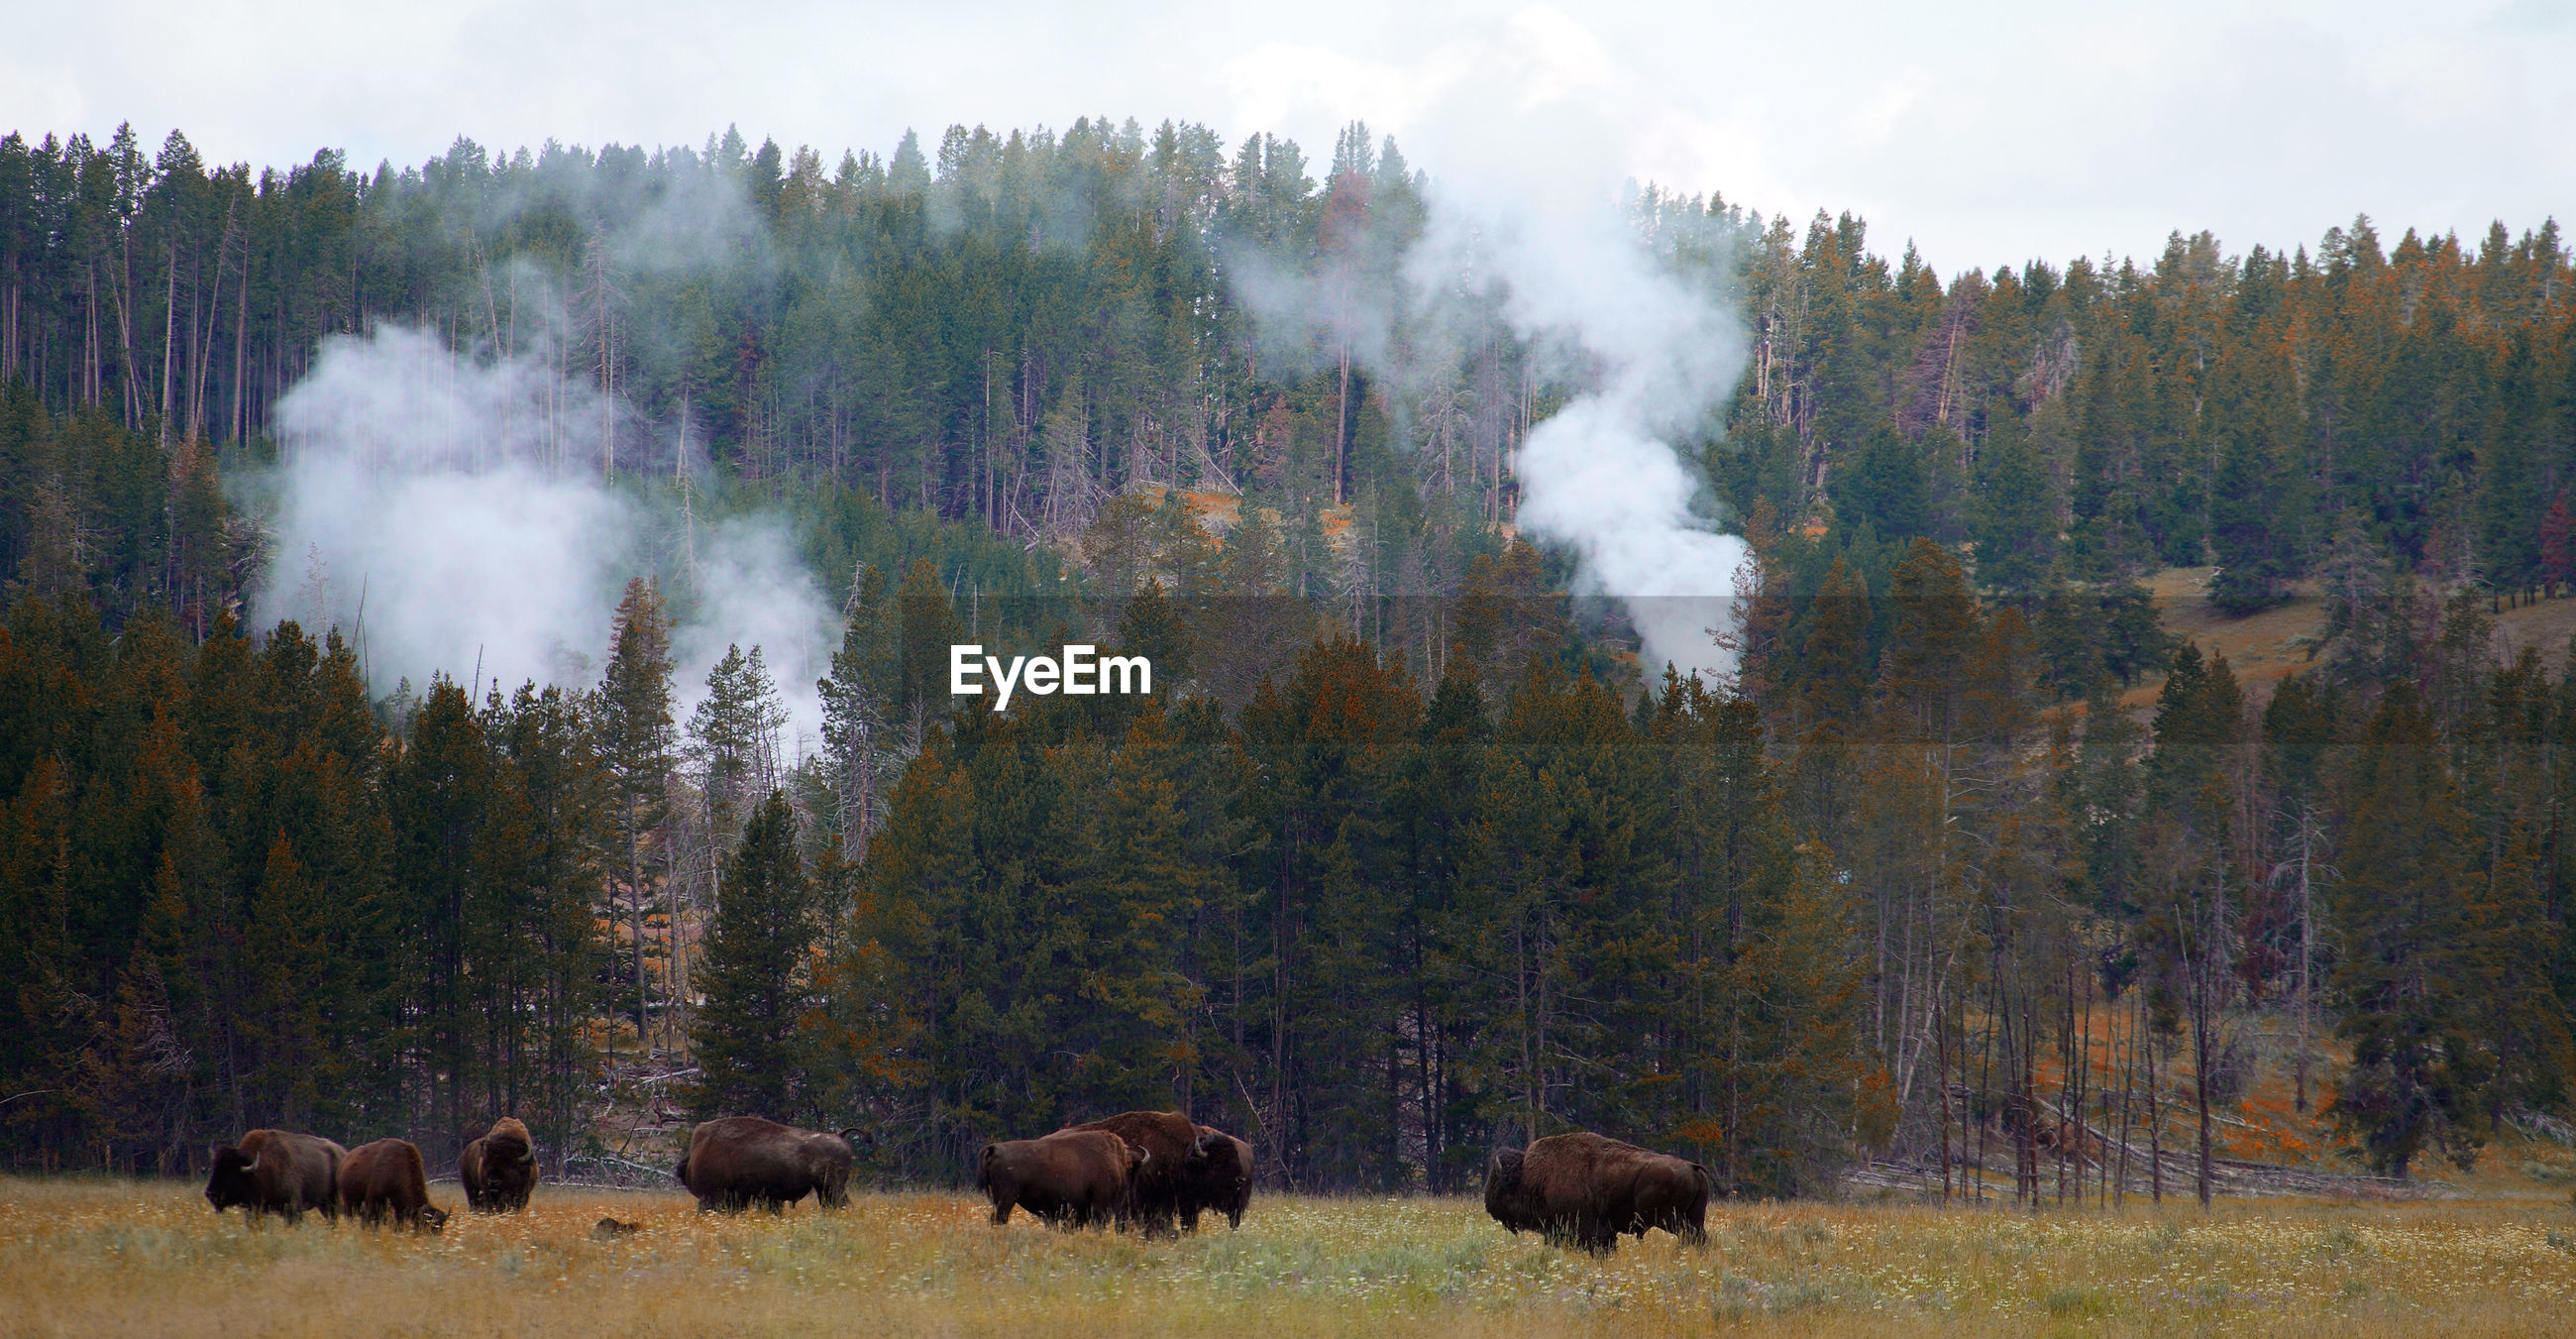 Bison grazing on field in forest